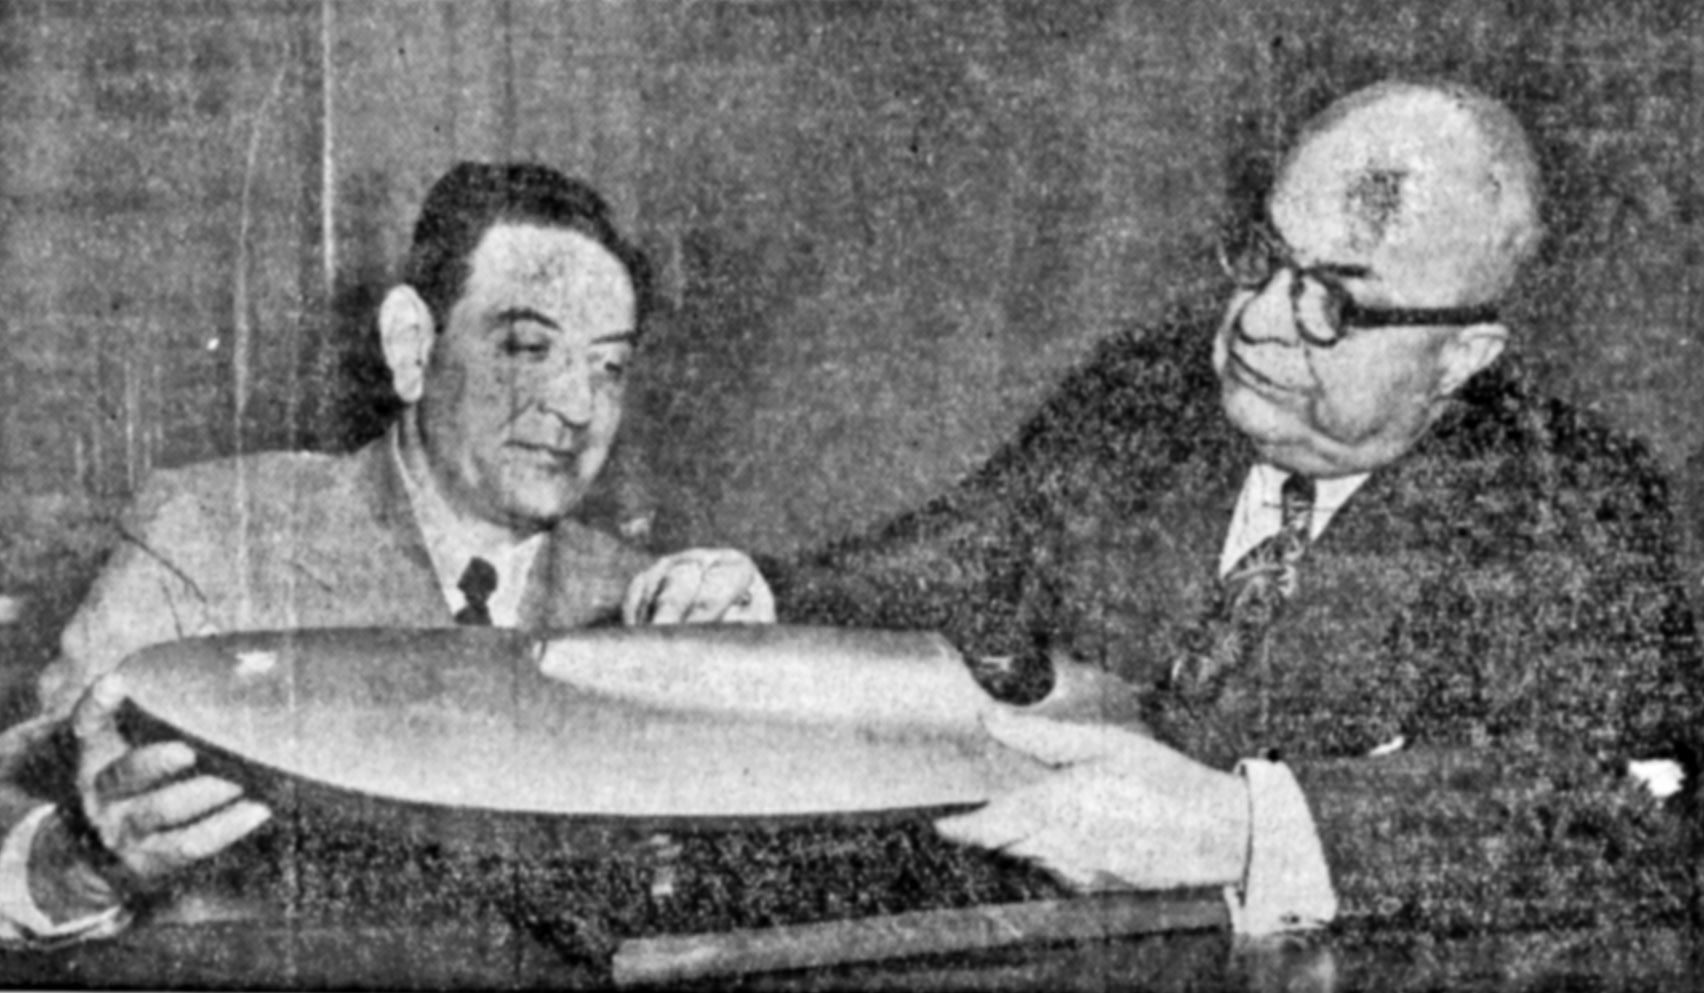 Guy Lombardo and Henry Kaiser examine a model of the Aluminum First